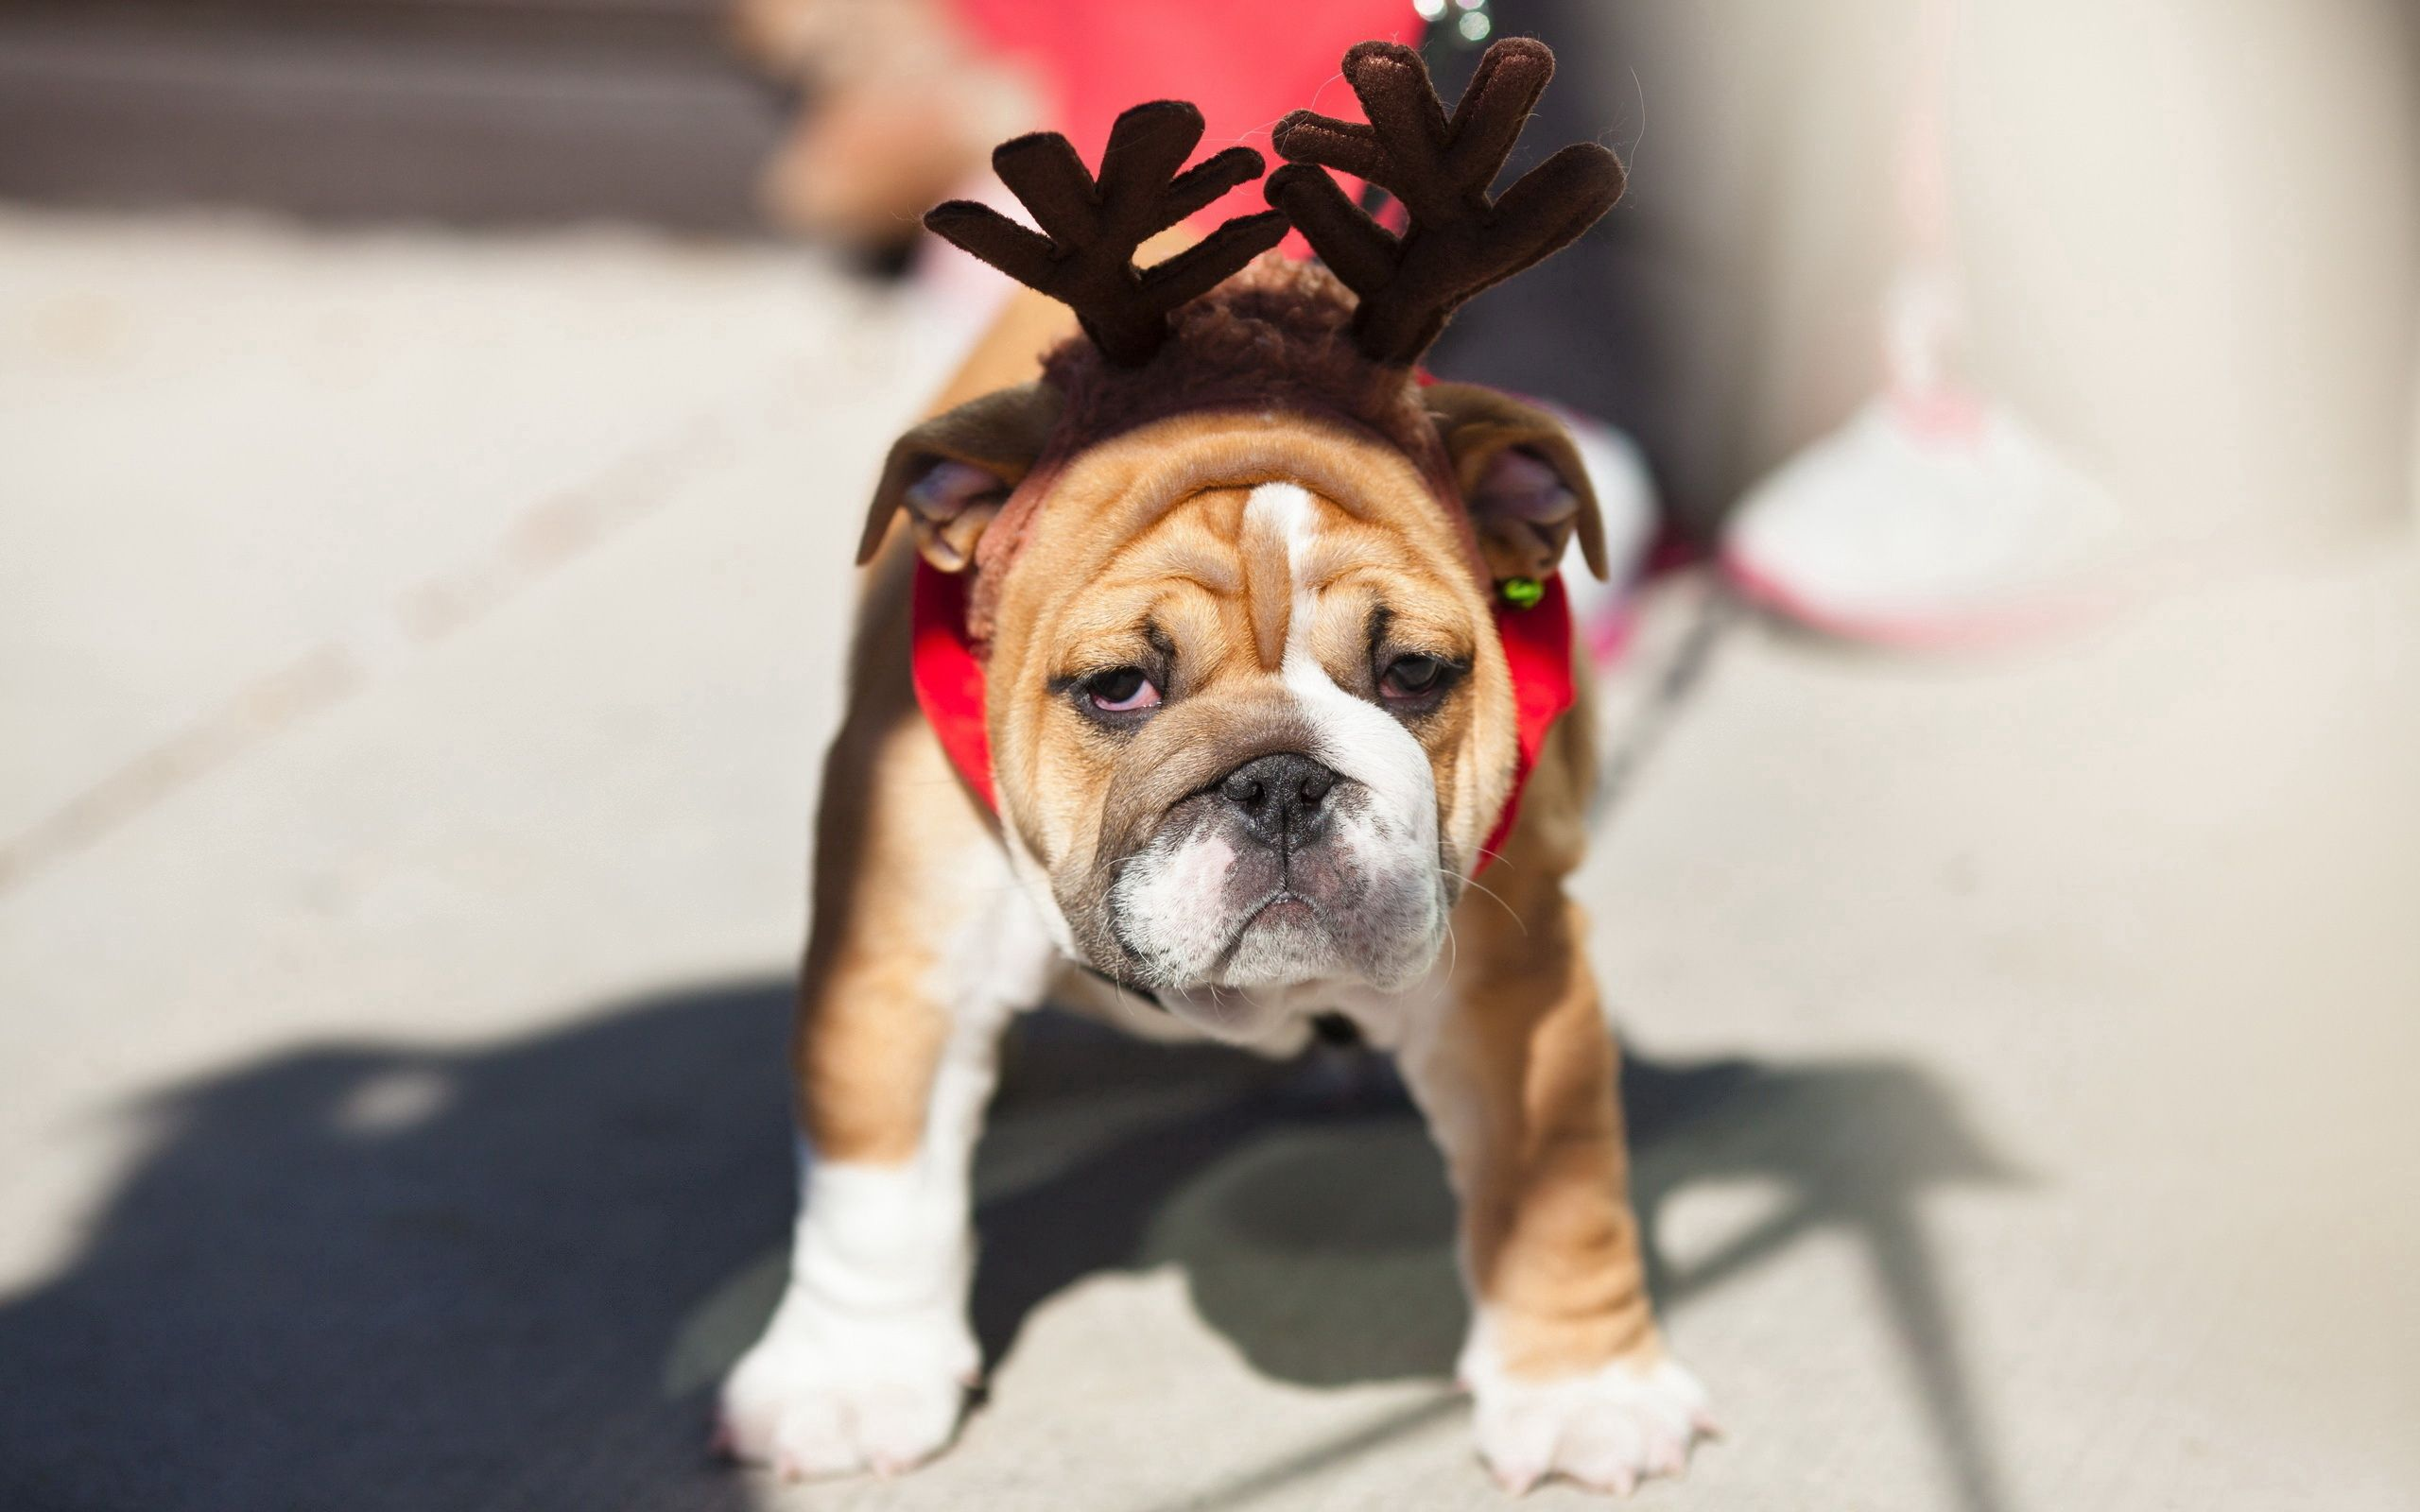 129965 download wallpaper Animals, Dog, Bulldog, Muzzle, Horns, Toy screensavers and pictures for free